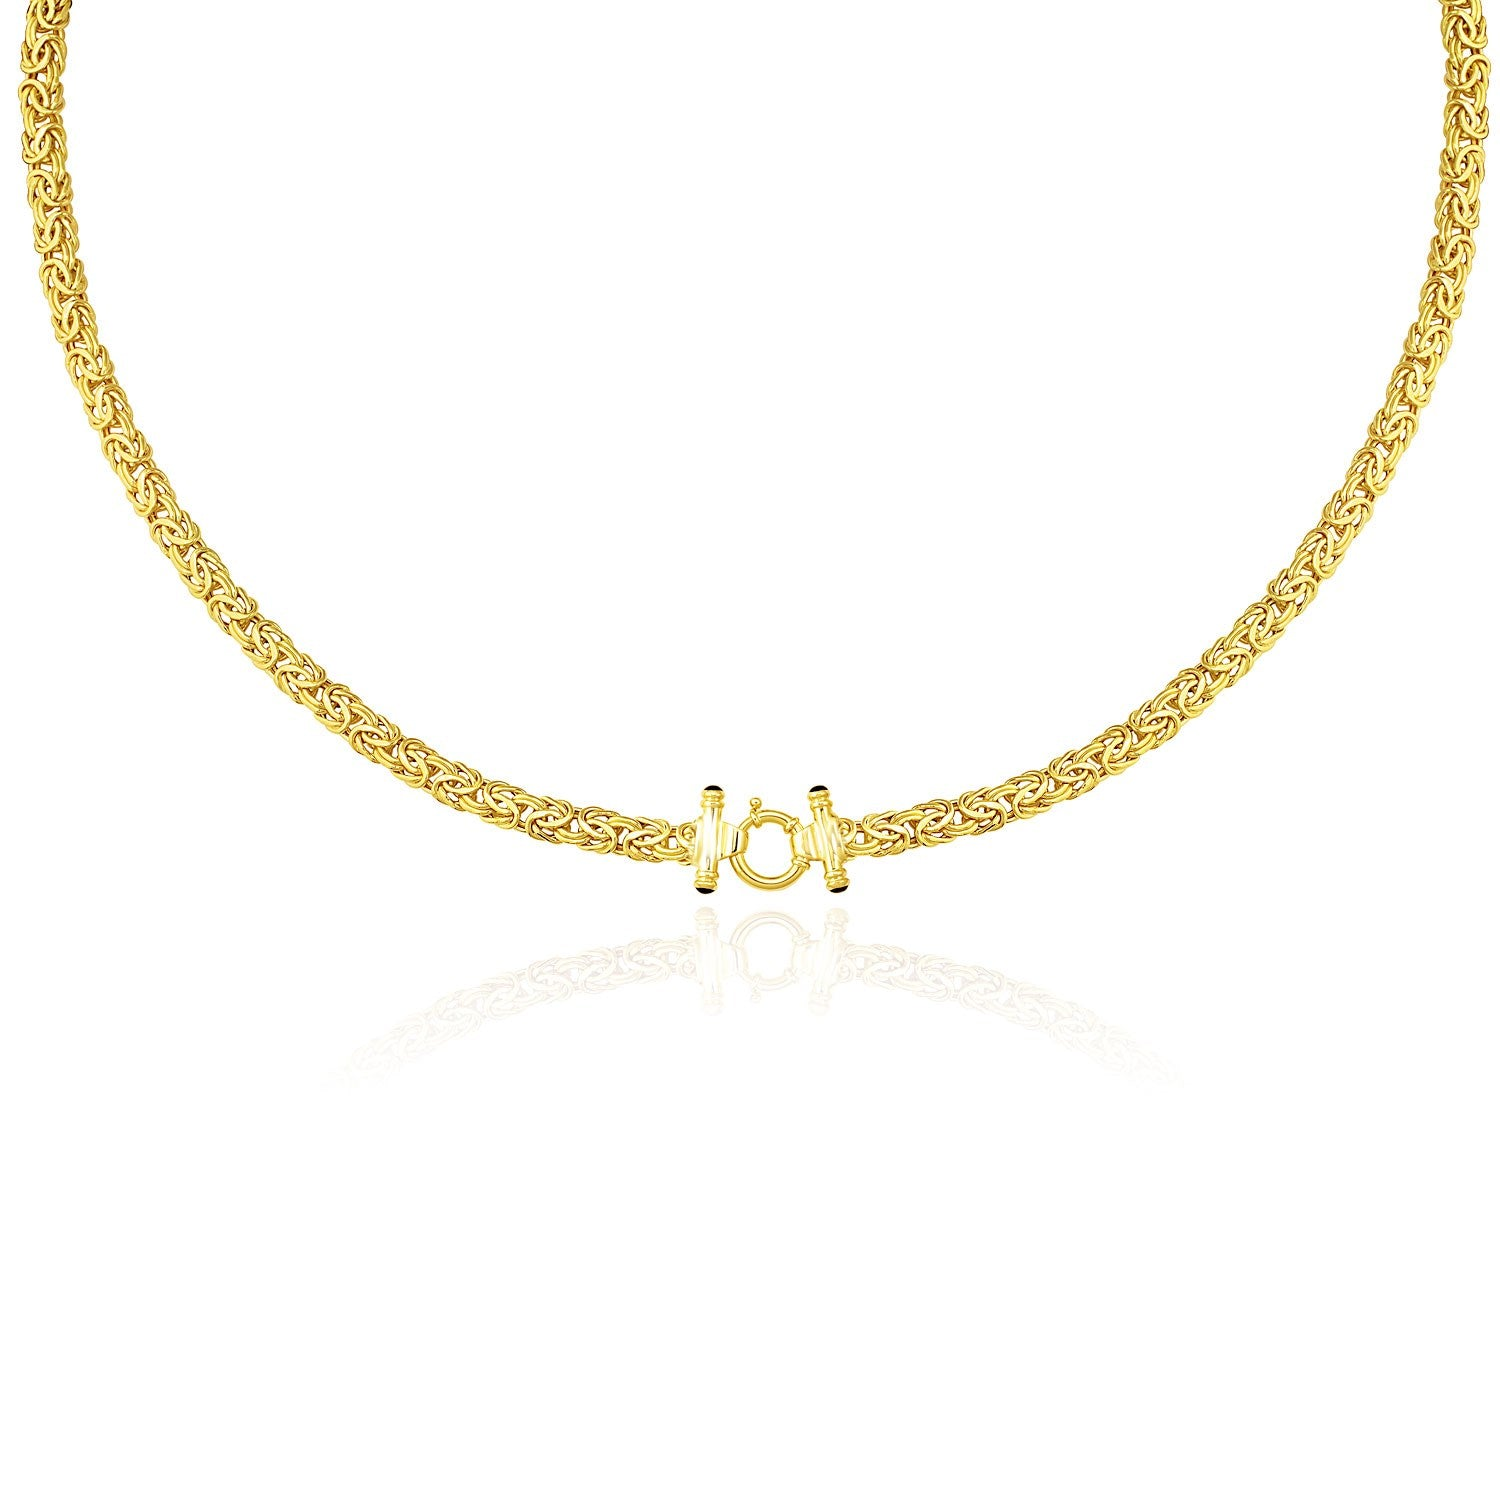 14K Yellow Gold Necklace with a Byzantine Style